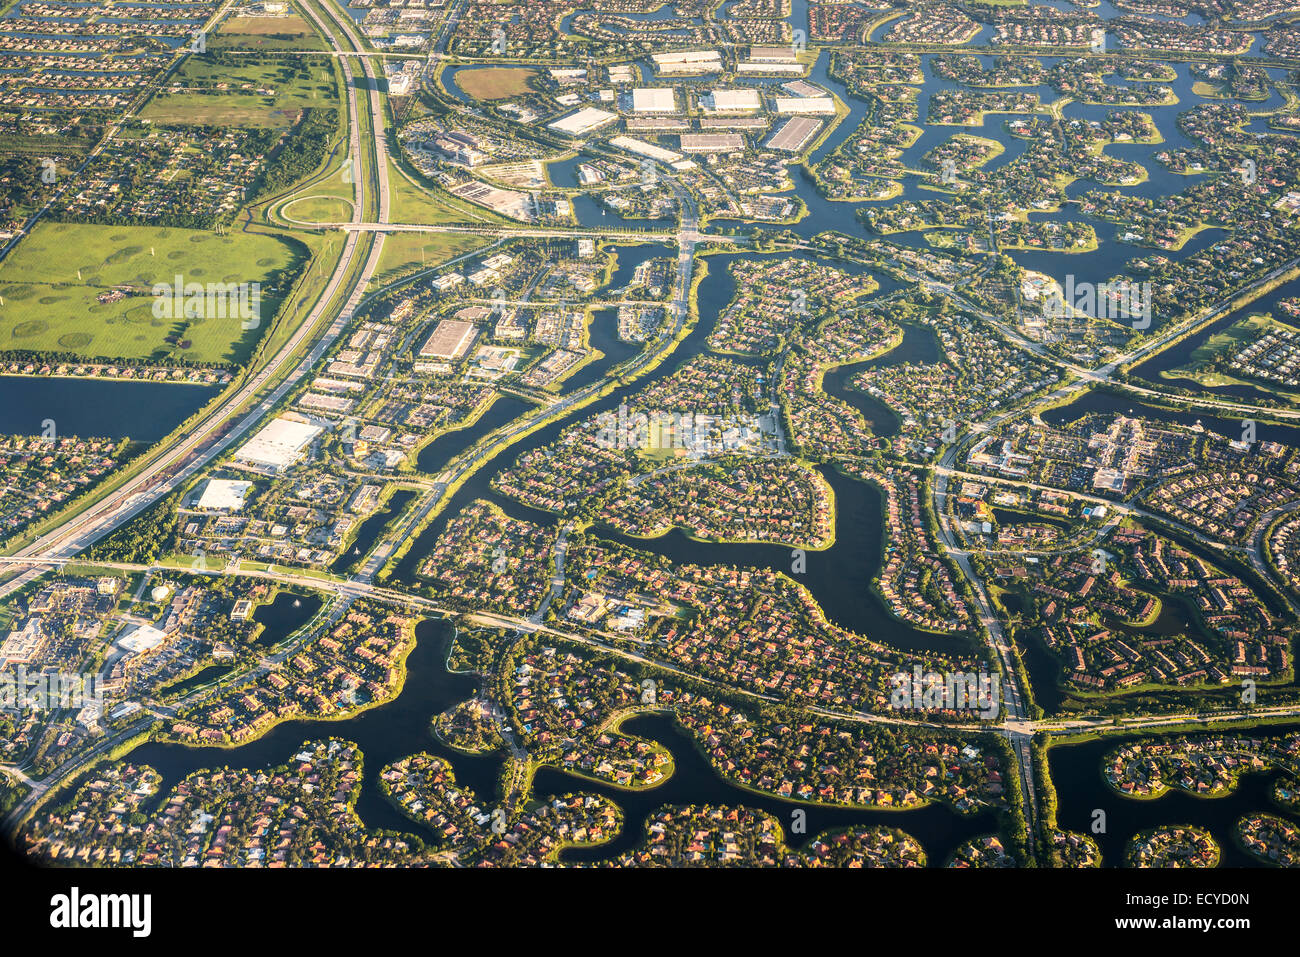 florida houses on the water. stock photo planeflyingamericausaaerial viewfloridahouses urbansuburbswater inletsatlantic coastfort lauderdale florida houses on the water f